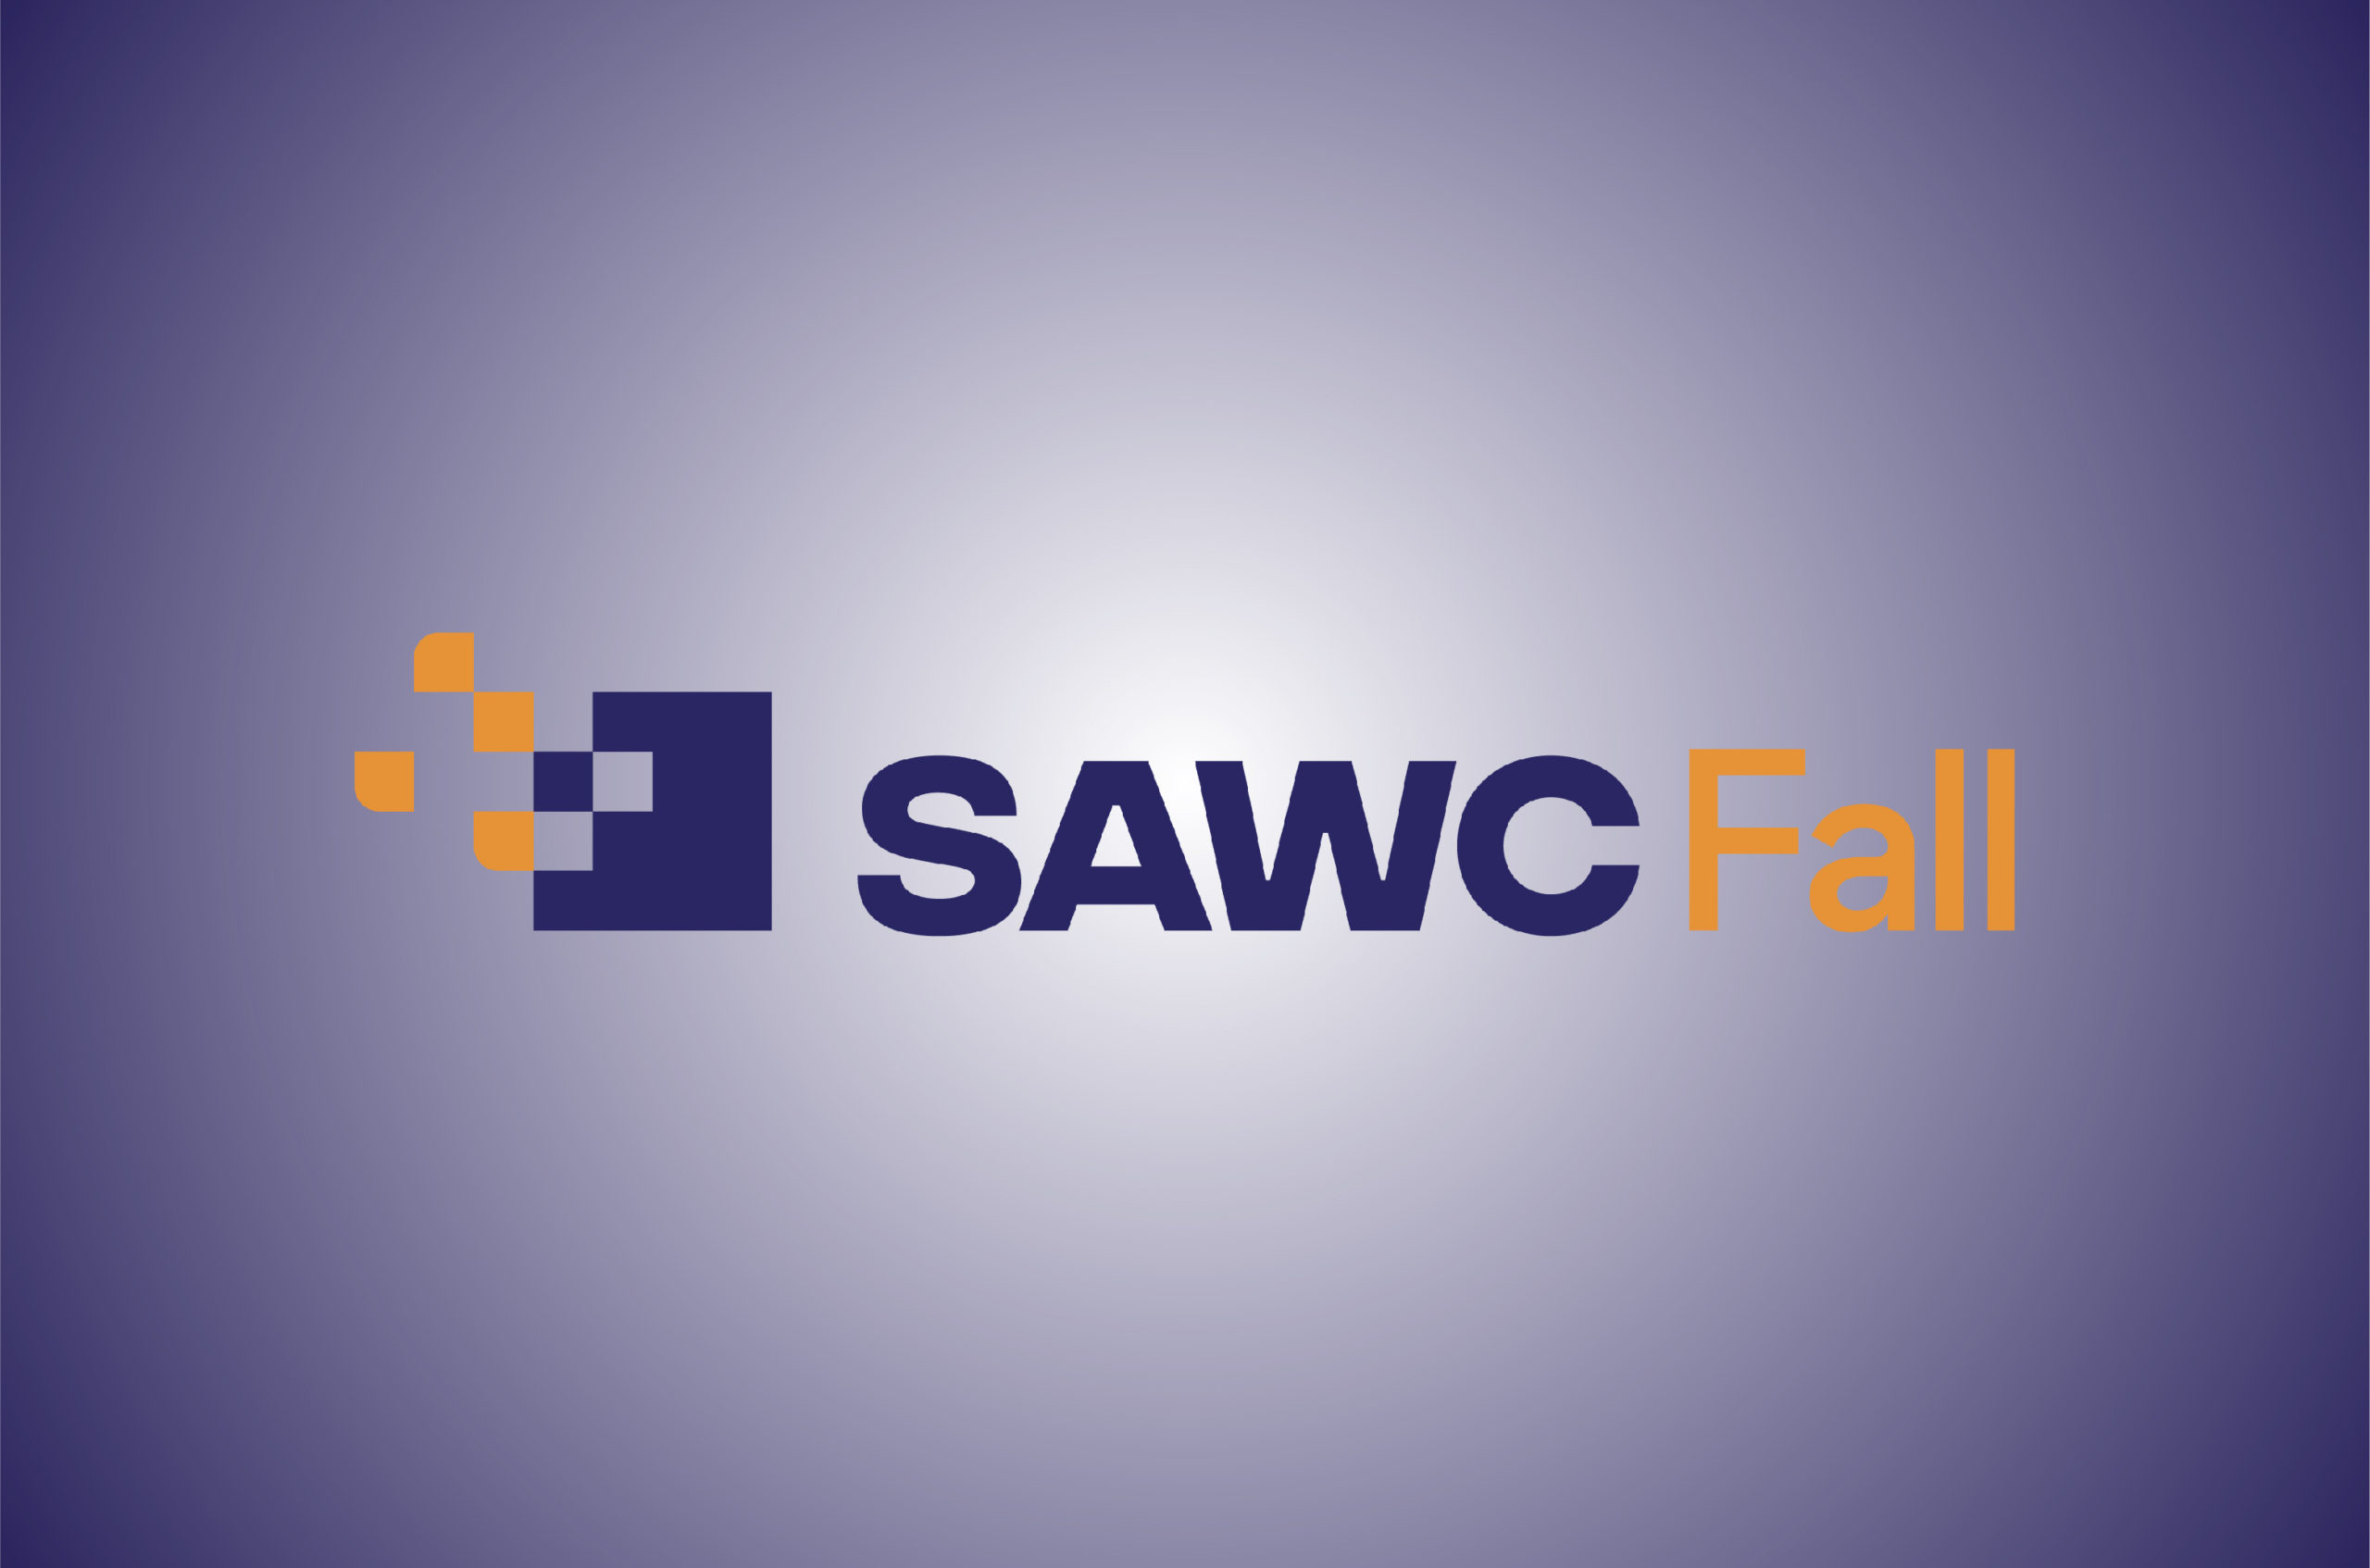 BBI exhibited at SAWC Fall 2018 to share the latest clinical and real world data